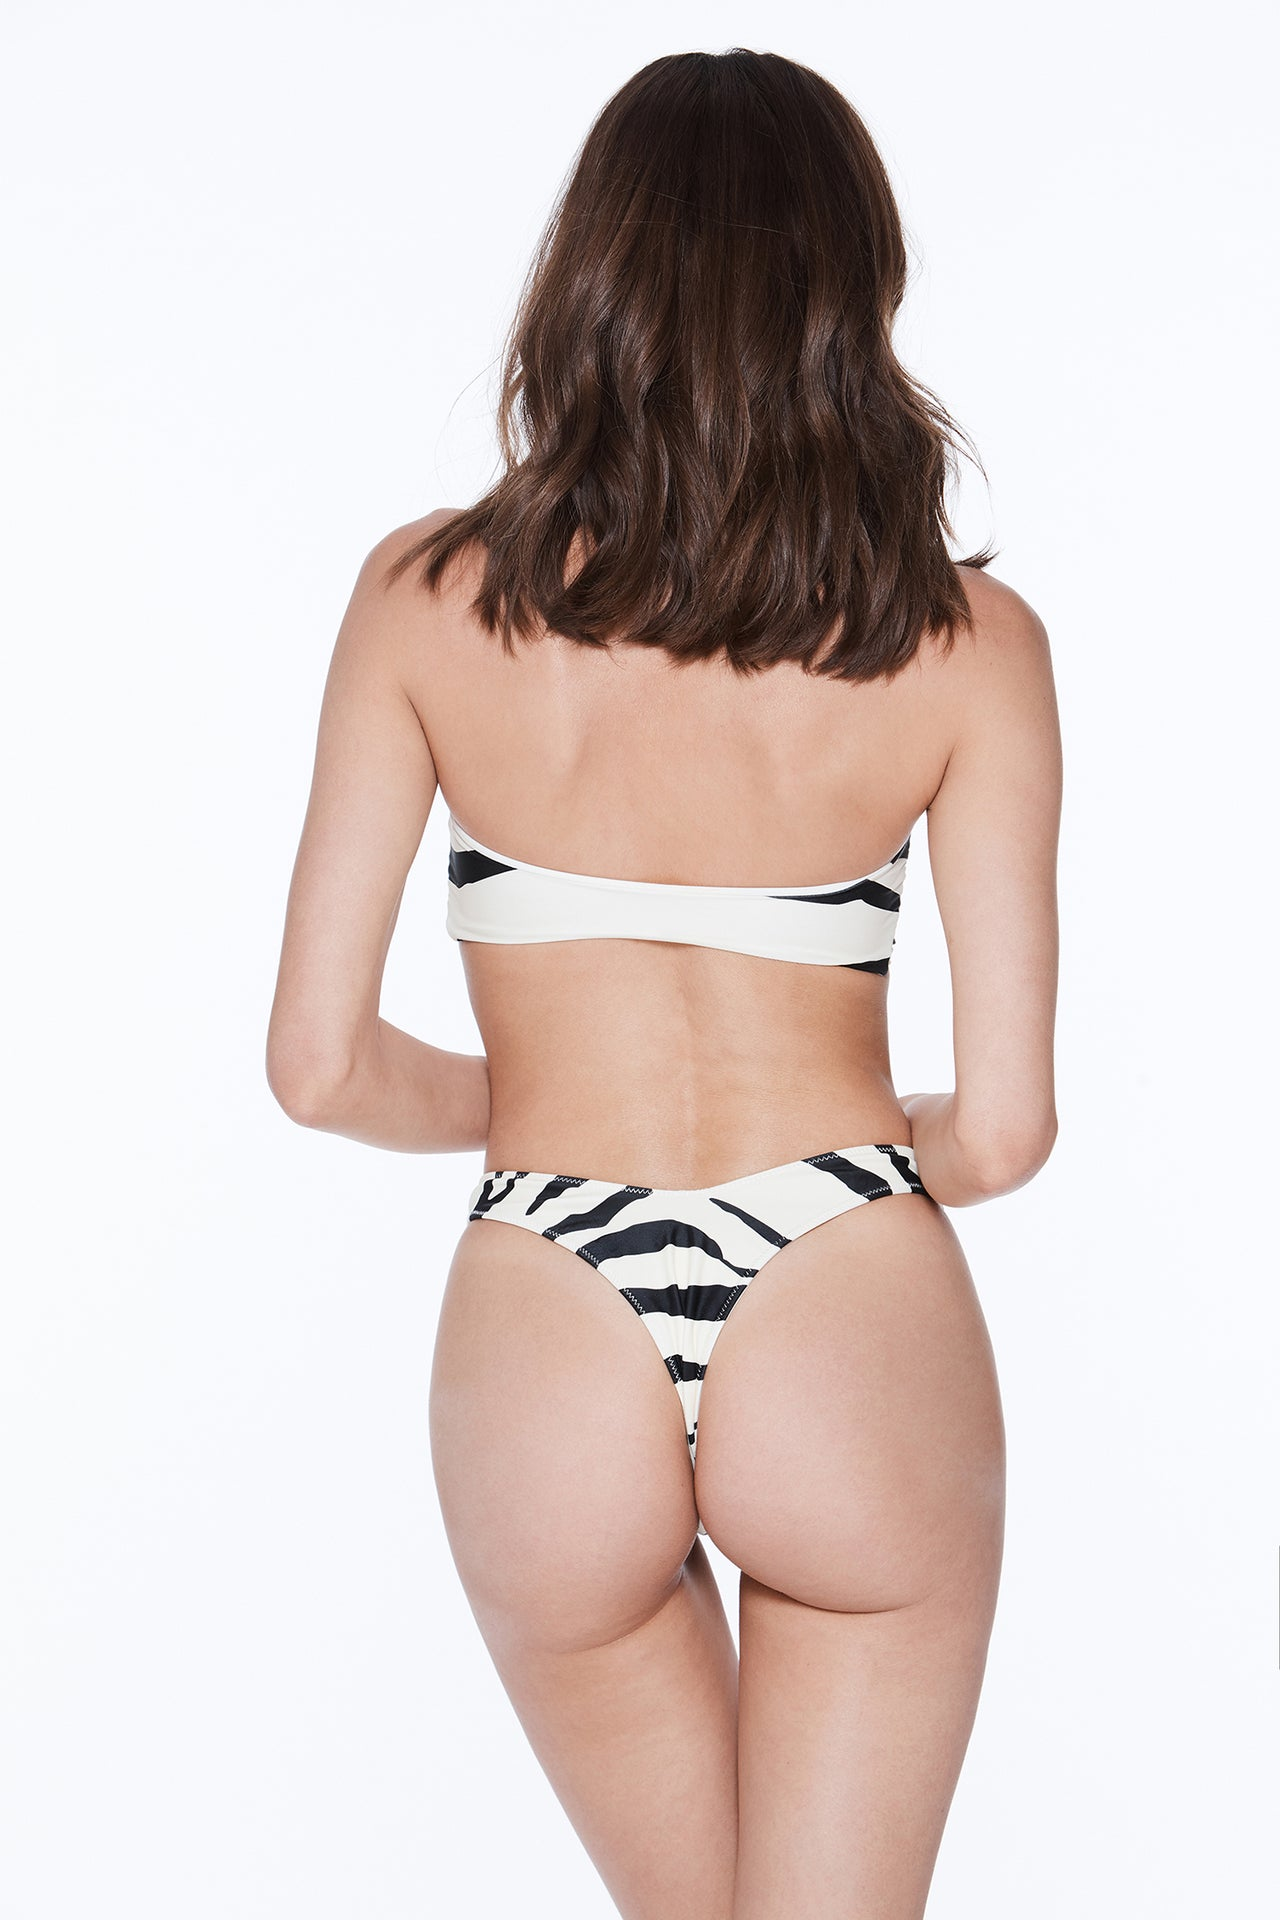 Luna Top - Zebra